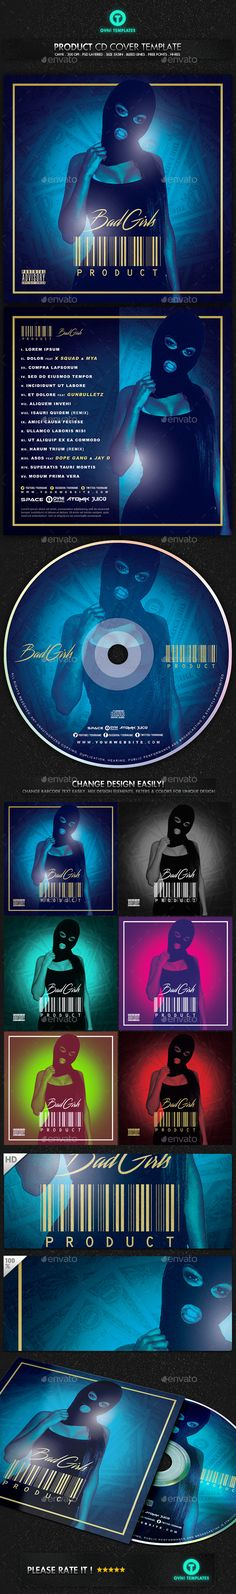 Loyalty Mixtape / Cd Cover Template | Fonts-Logos-Icons